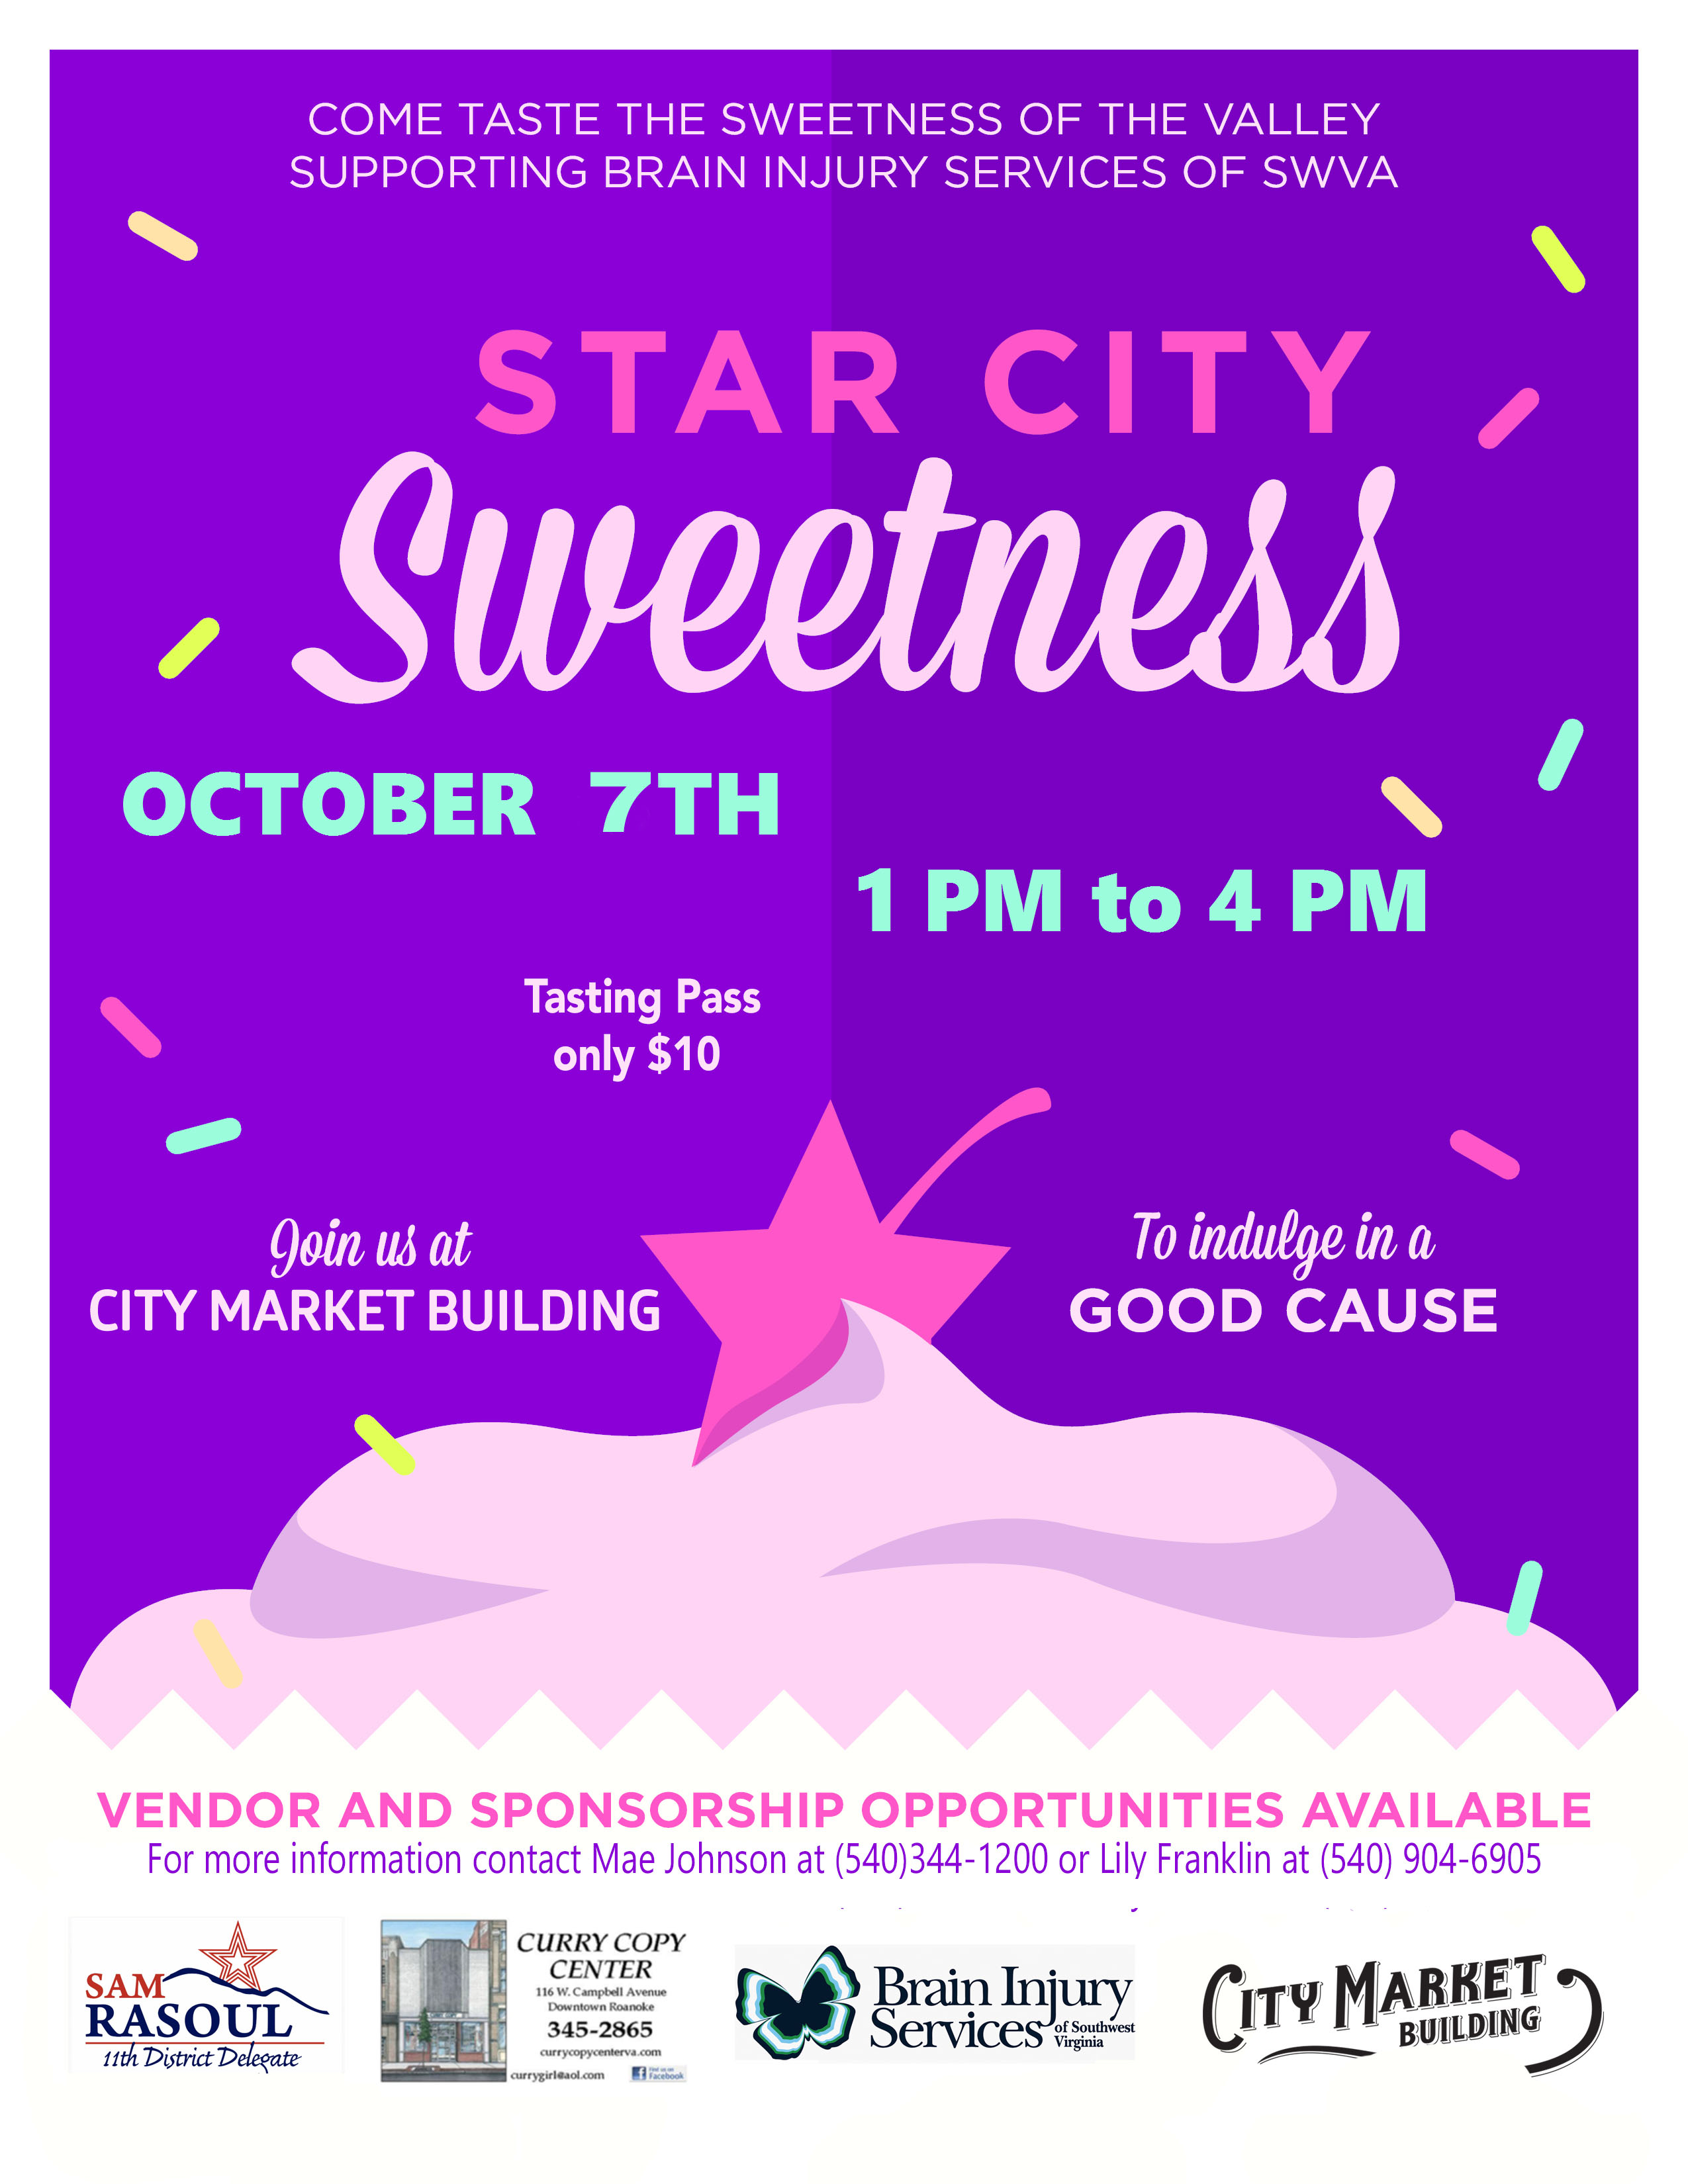 Star City Sweetness